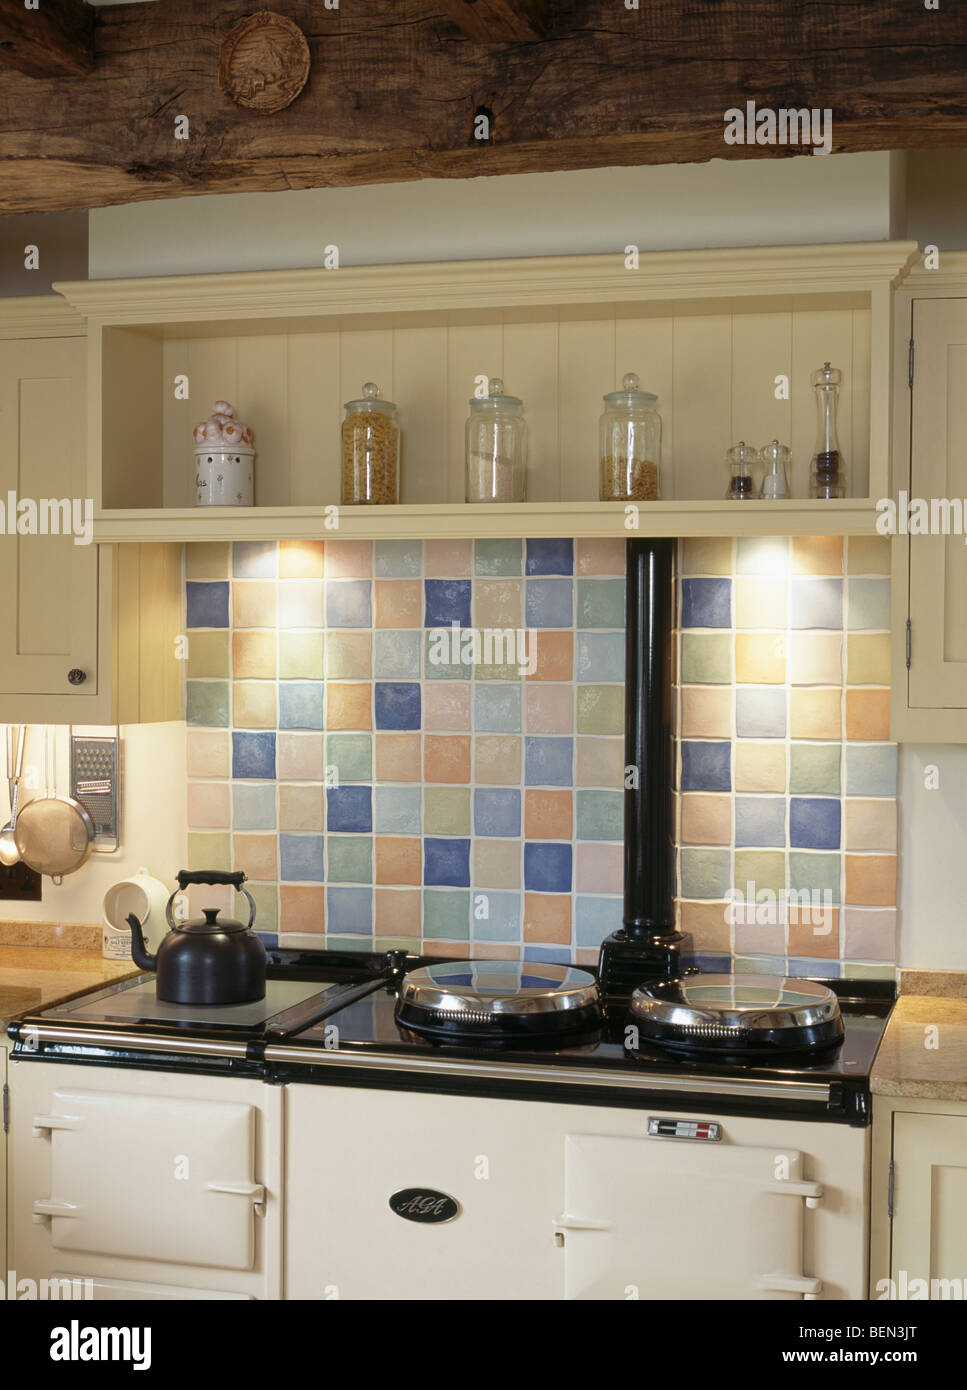 Cream Shelf And Pastel Ceramic Tiled Splash Back Above